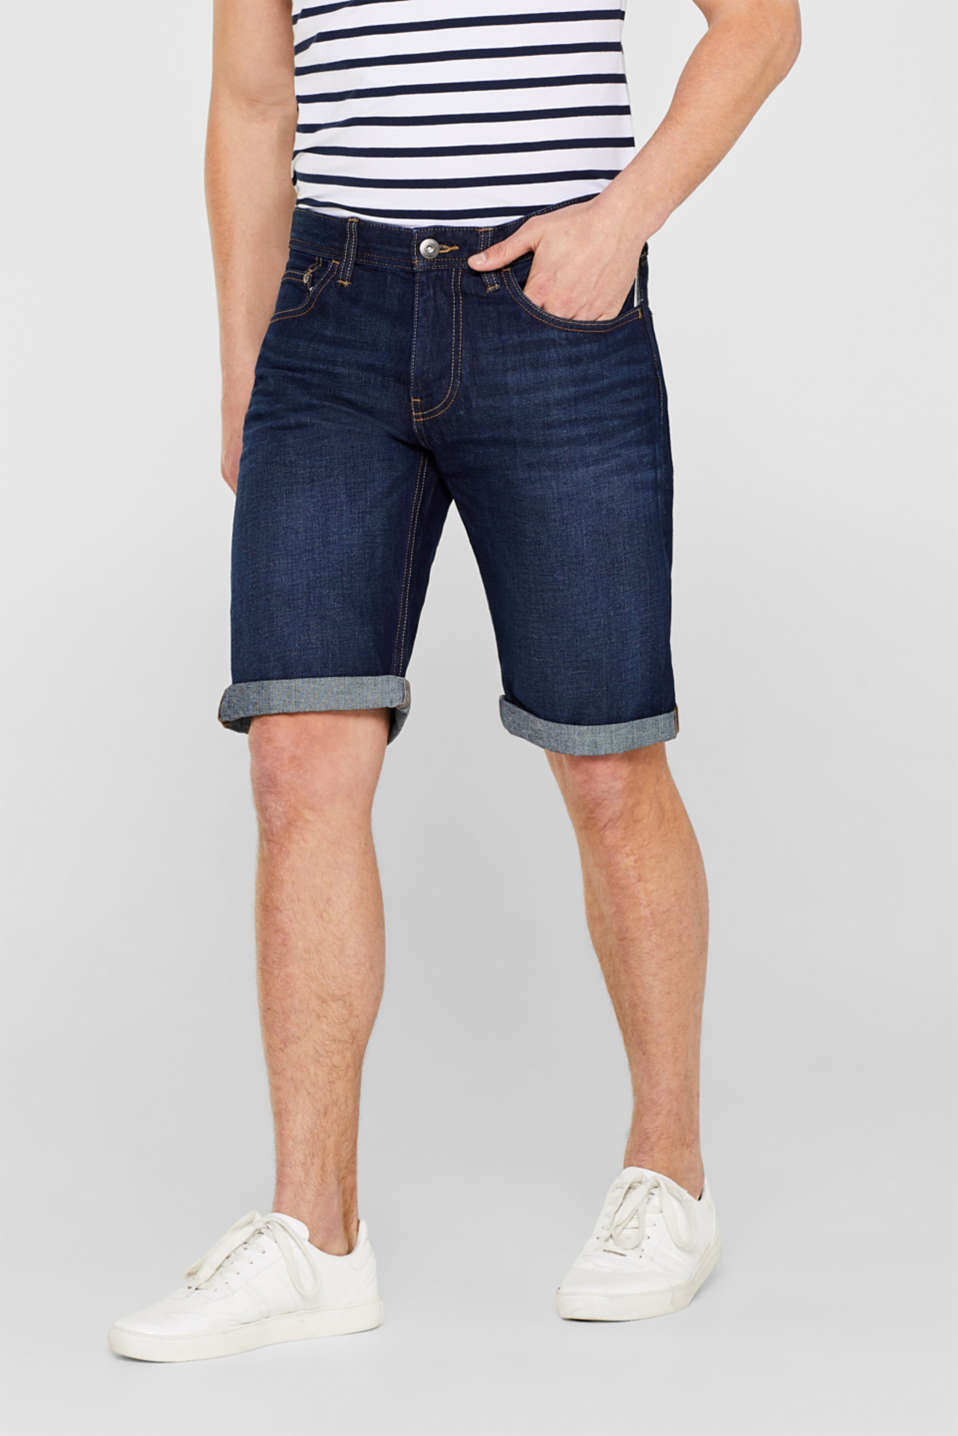 Edc Shorts In Shop Our 100Cotton Online Denim At thCrxsQd